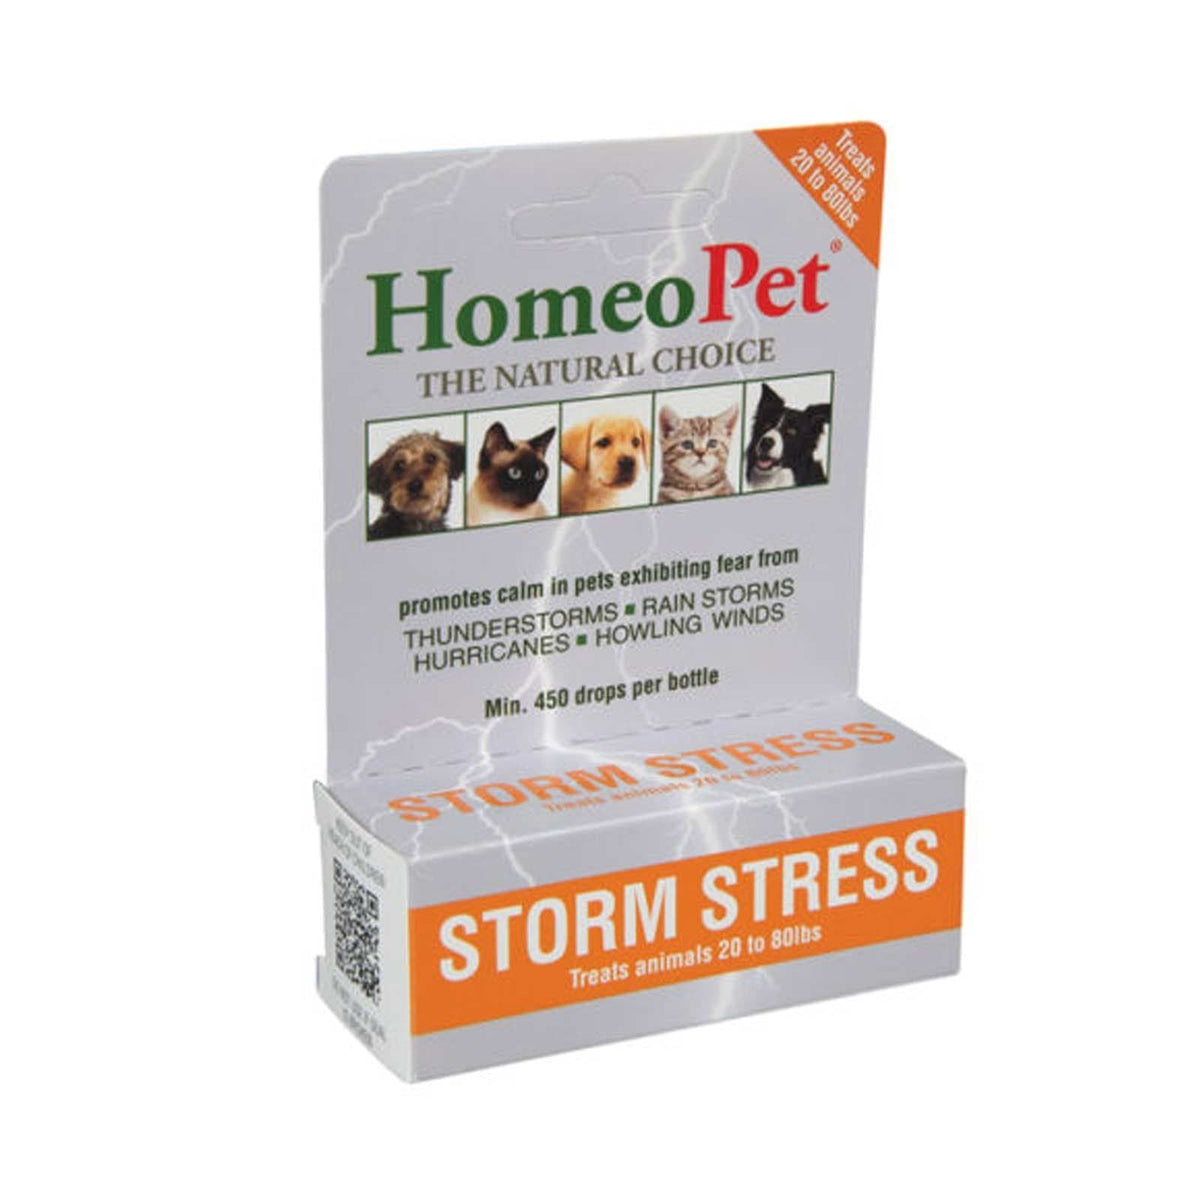 Storm Stress - Pets 15ml (Approx. 450+ drops per bottle)